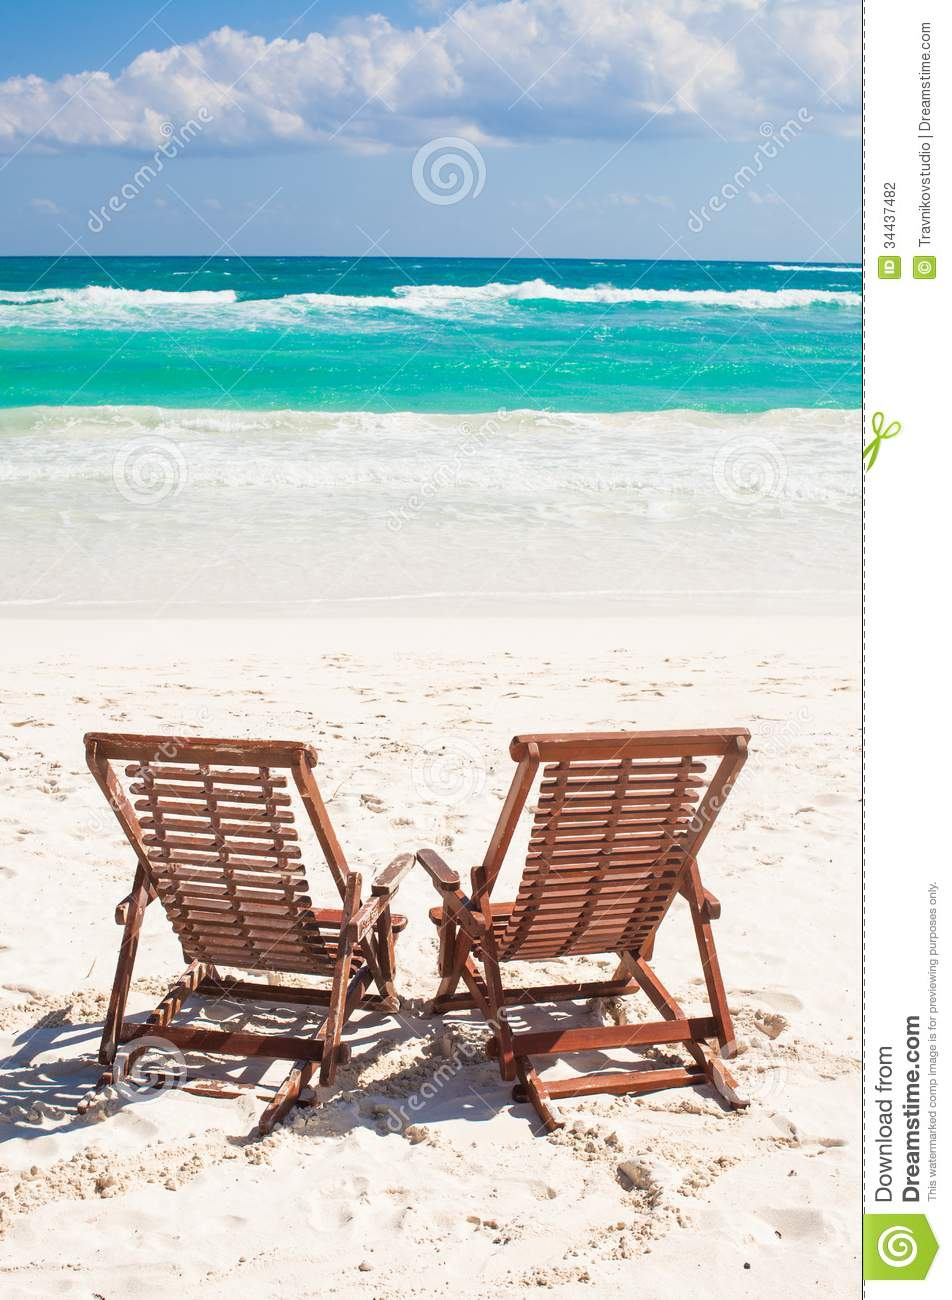 Beach wooden chairs for vacations and relax on stock photo for White sand beach vacations